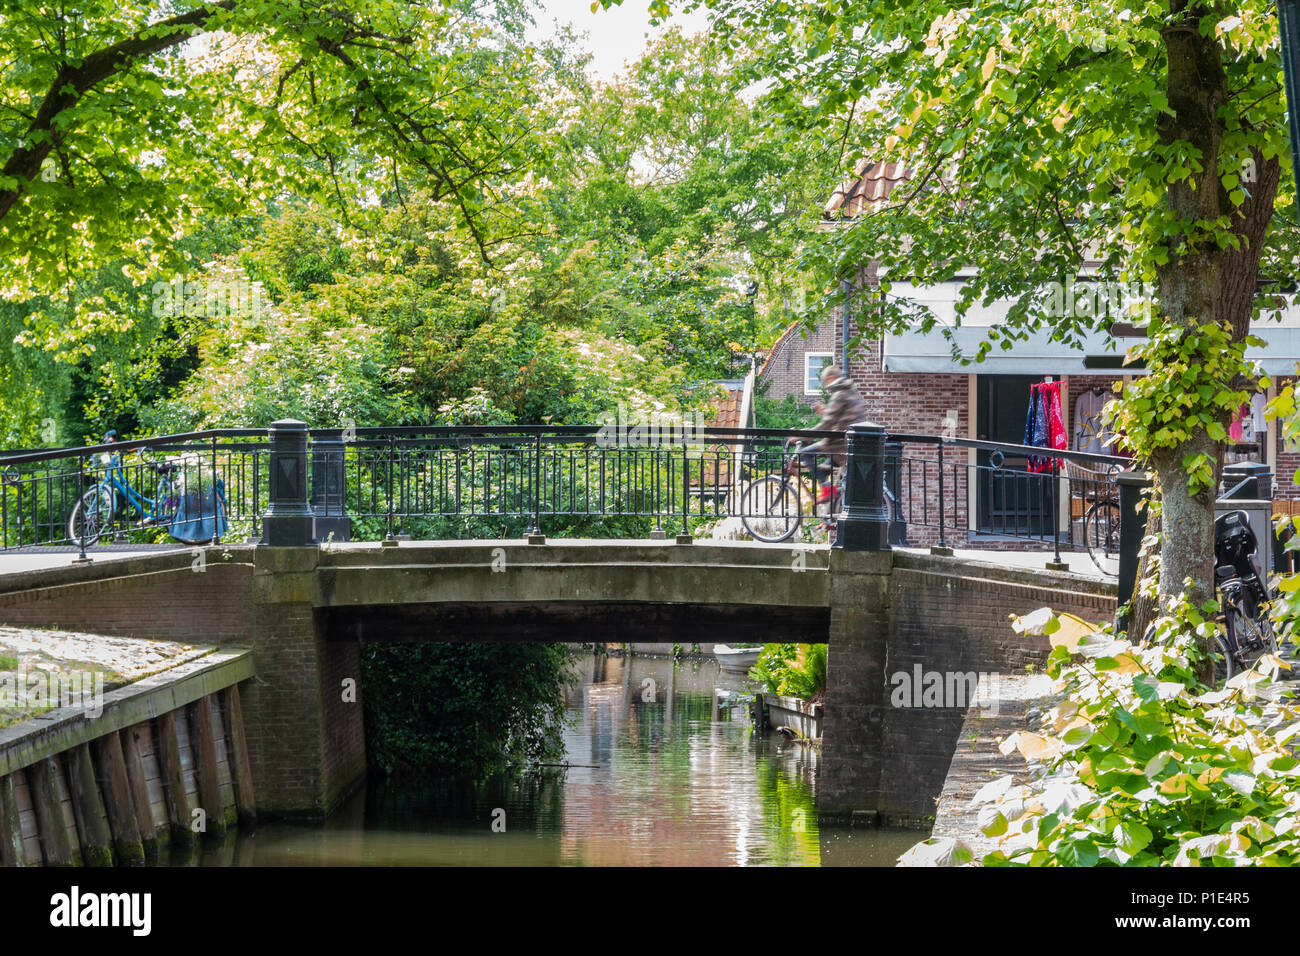 Old elegant and wooded bridge in the village of Edam. netherlands - Stock Image